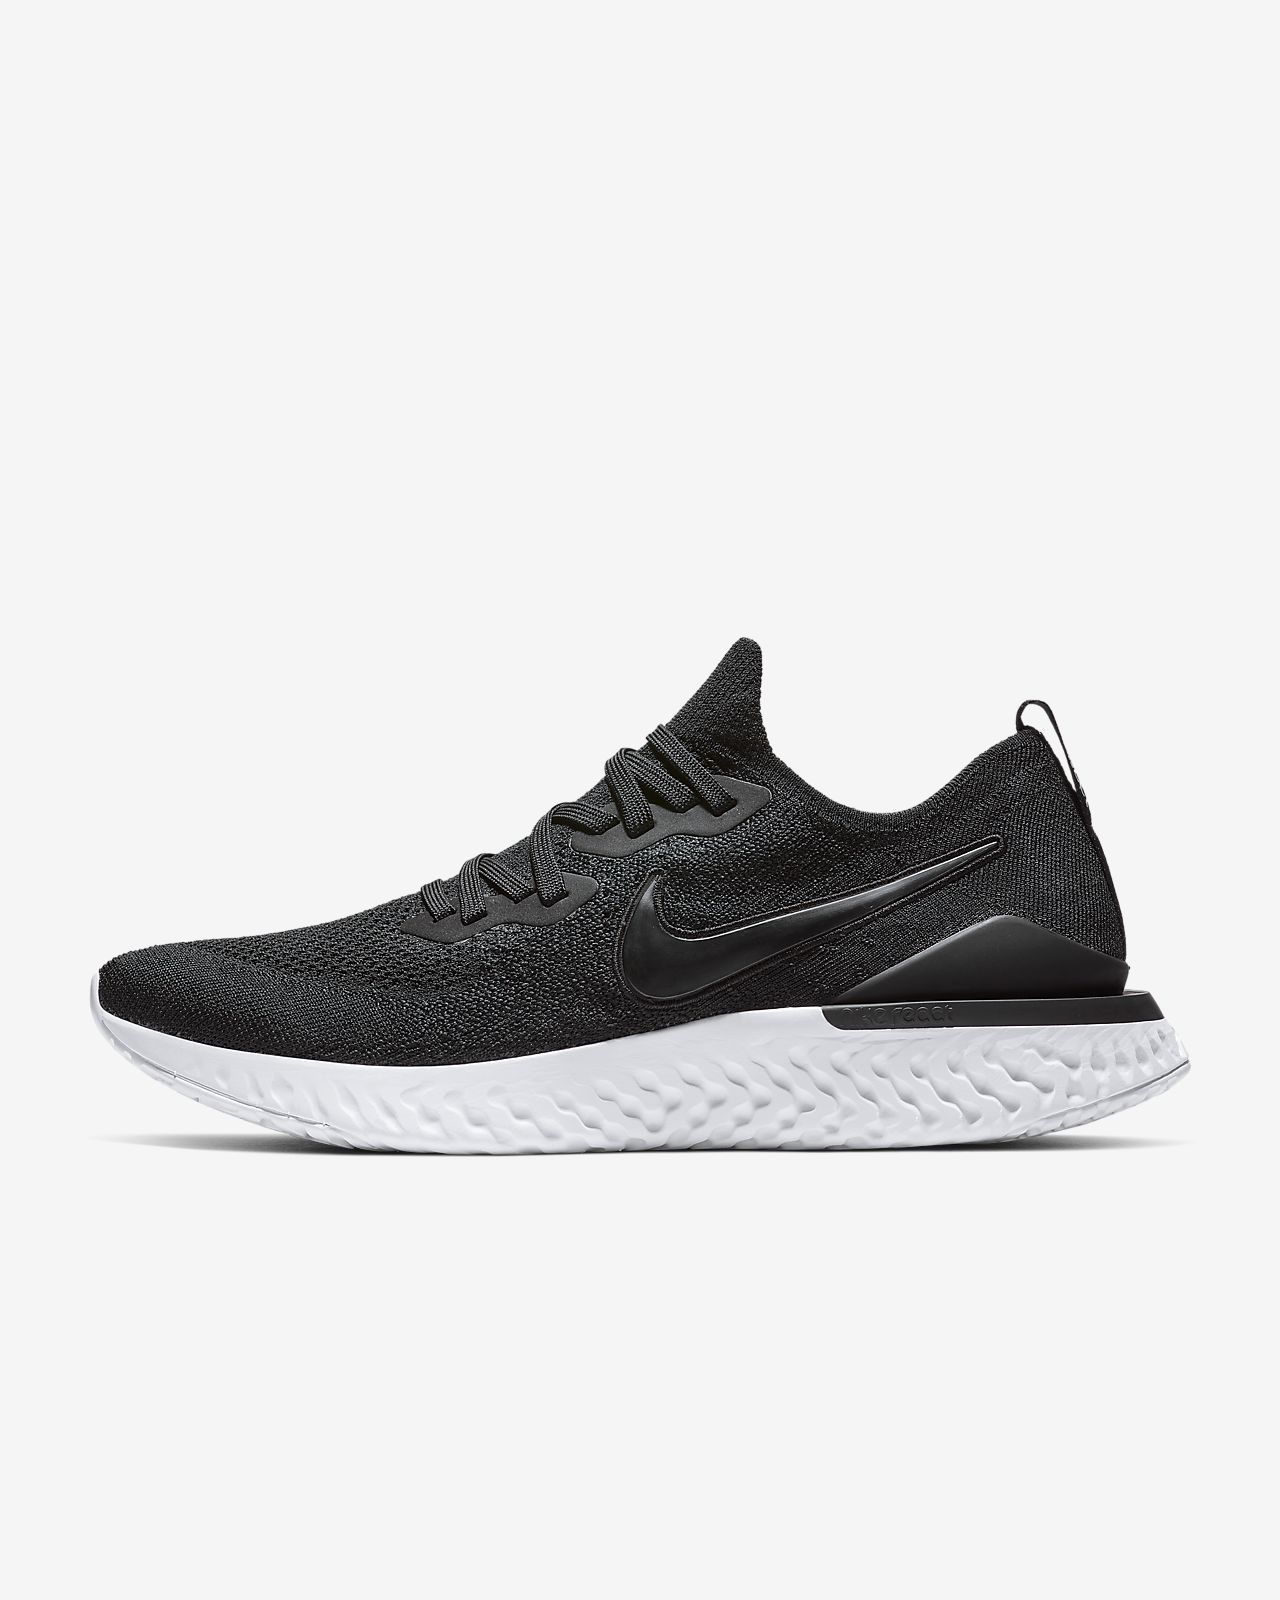 1e8ff6453be9 Nike Epic React Flyknit 2 Men s Running Shoe. Nike.com AU